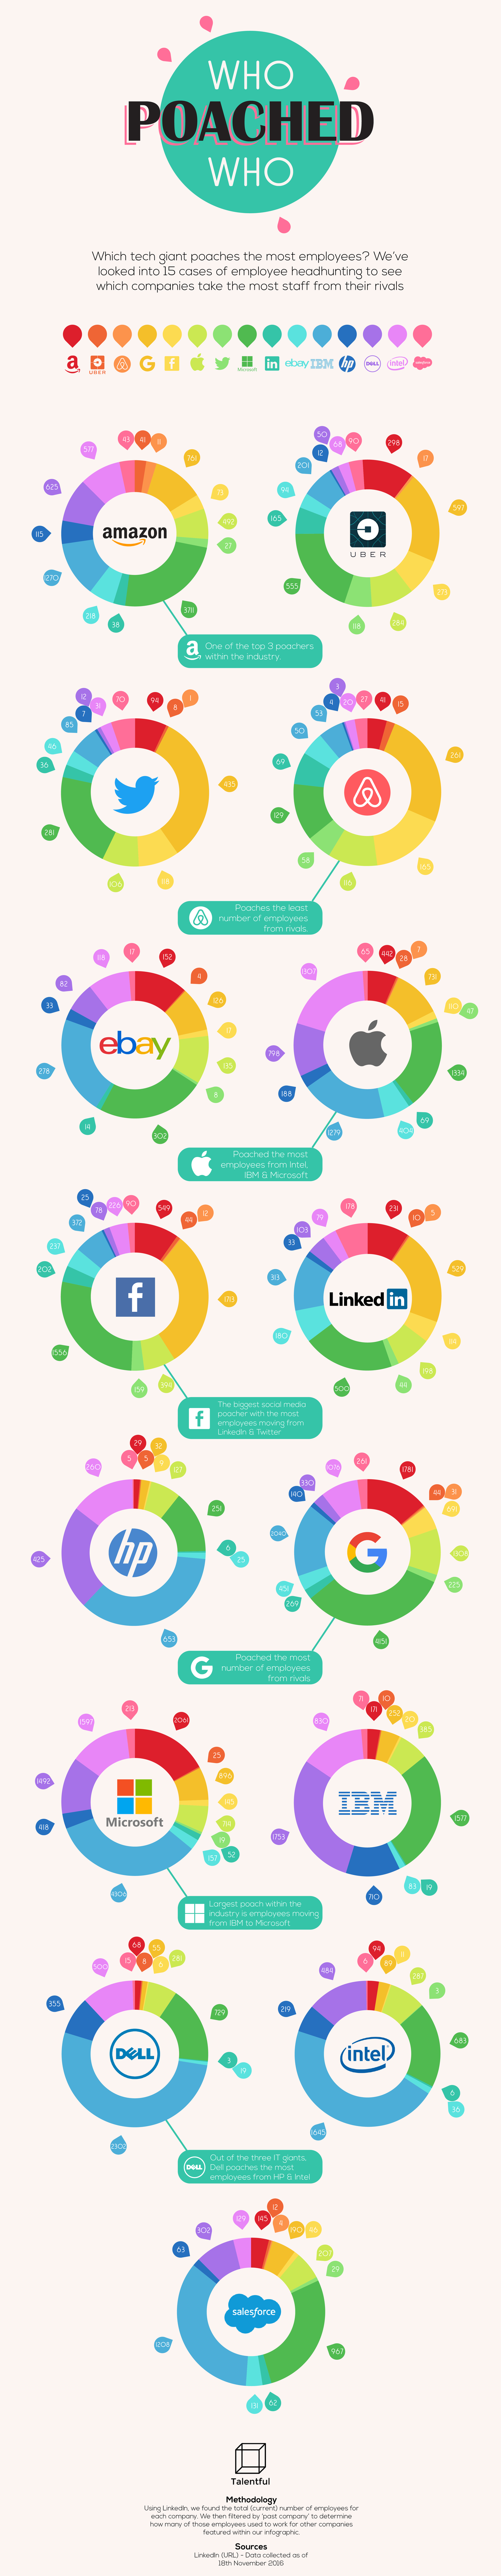 Which Tech Giant Poaches The Most Employees - Infographic